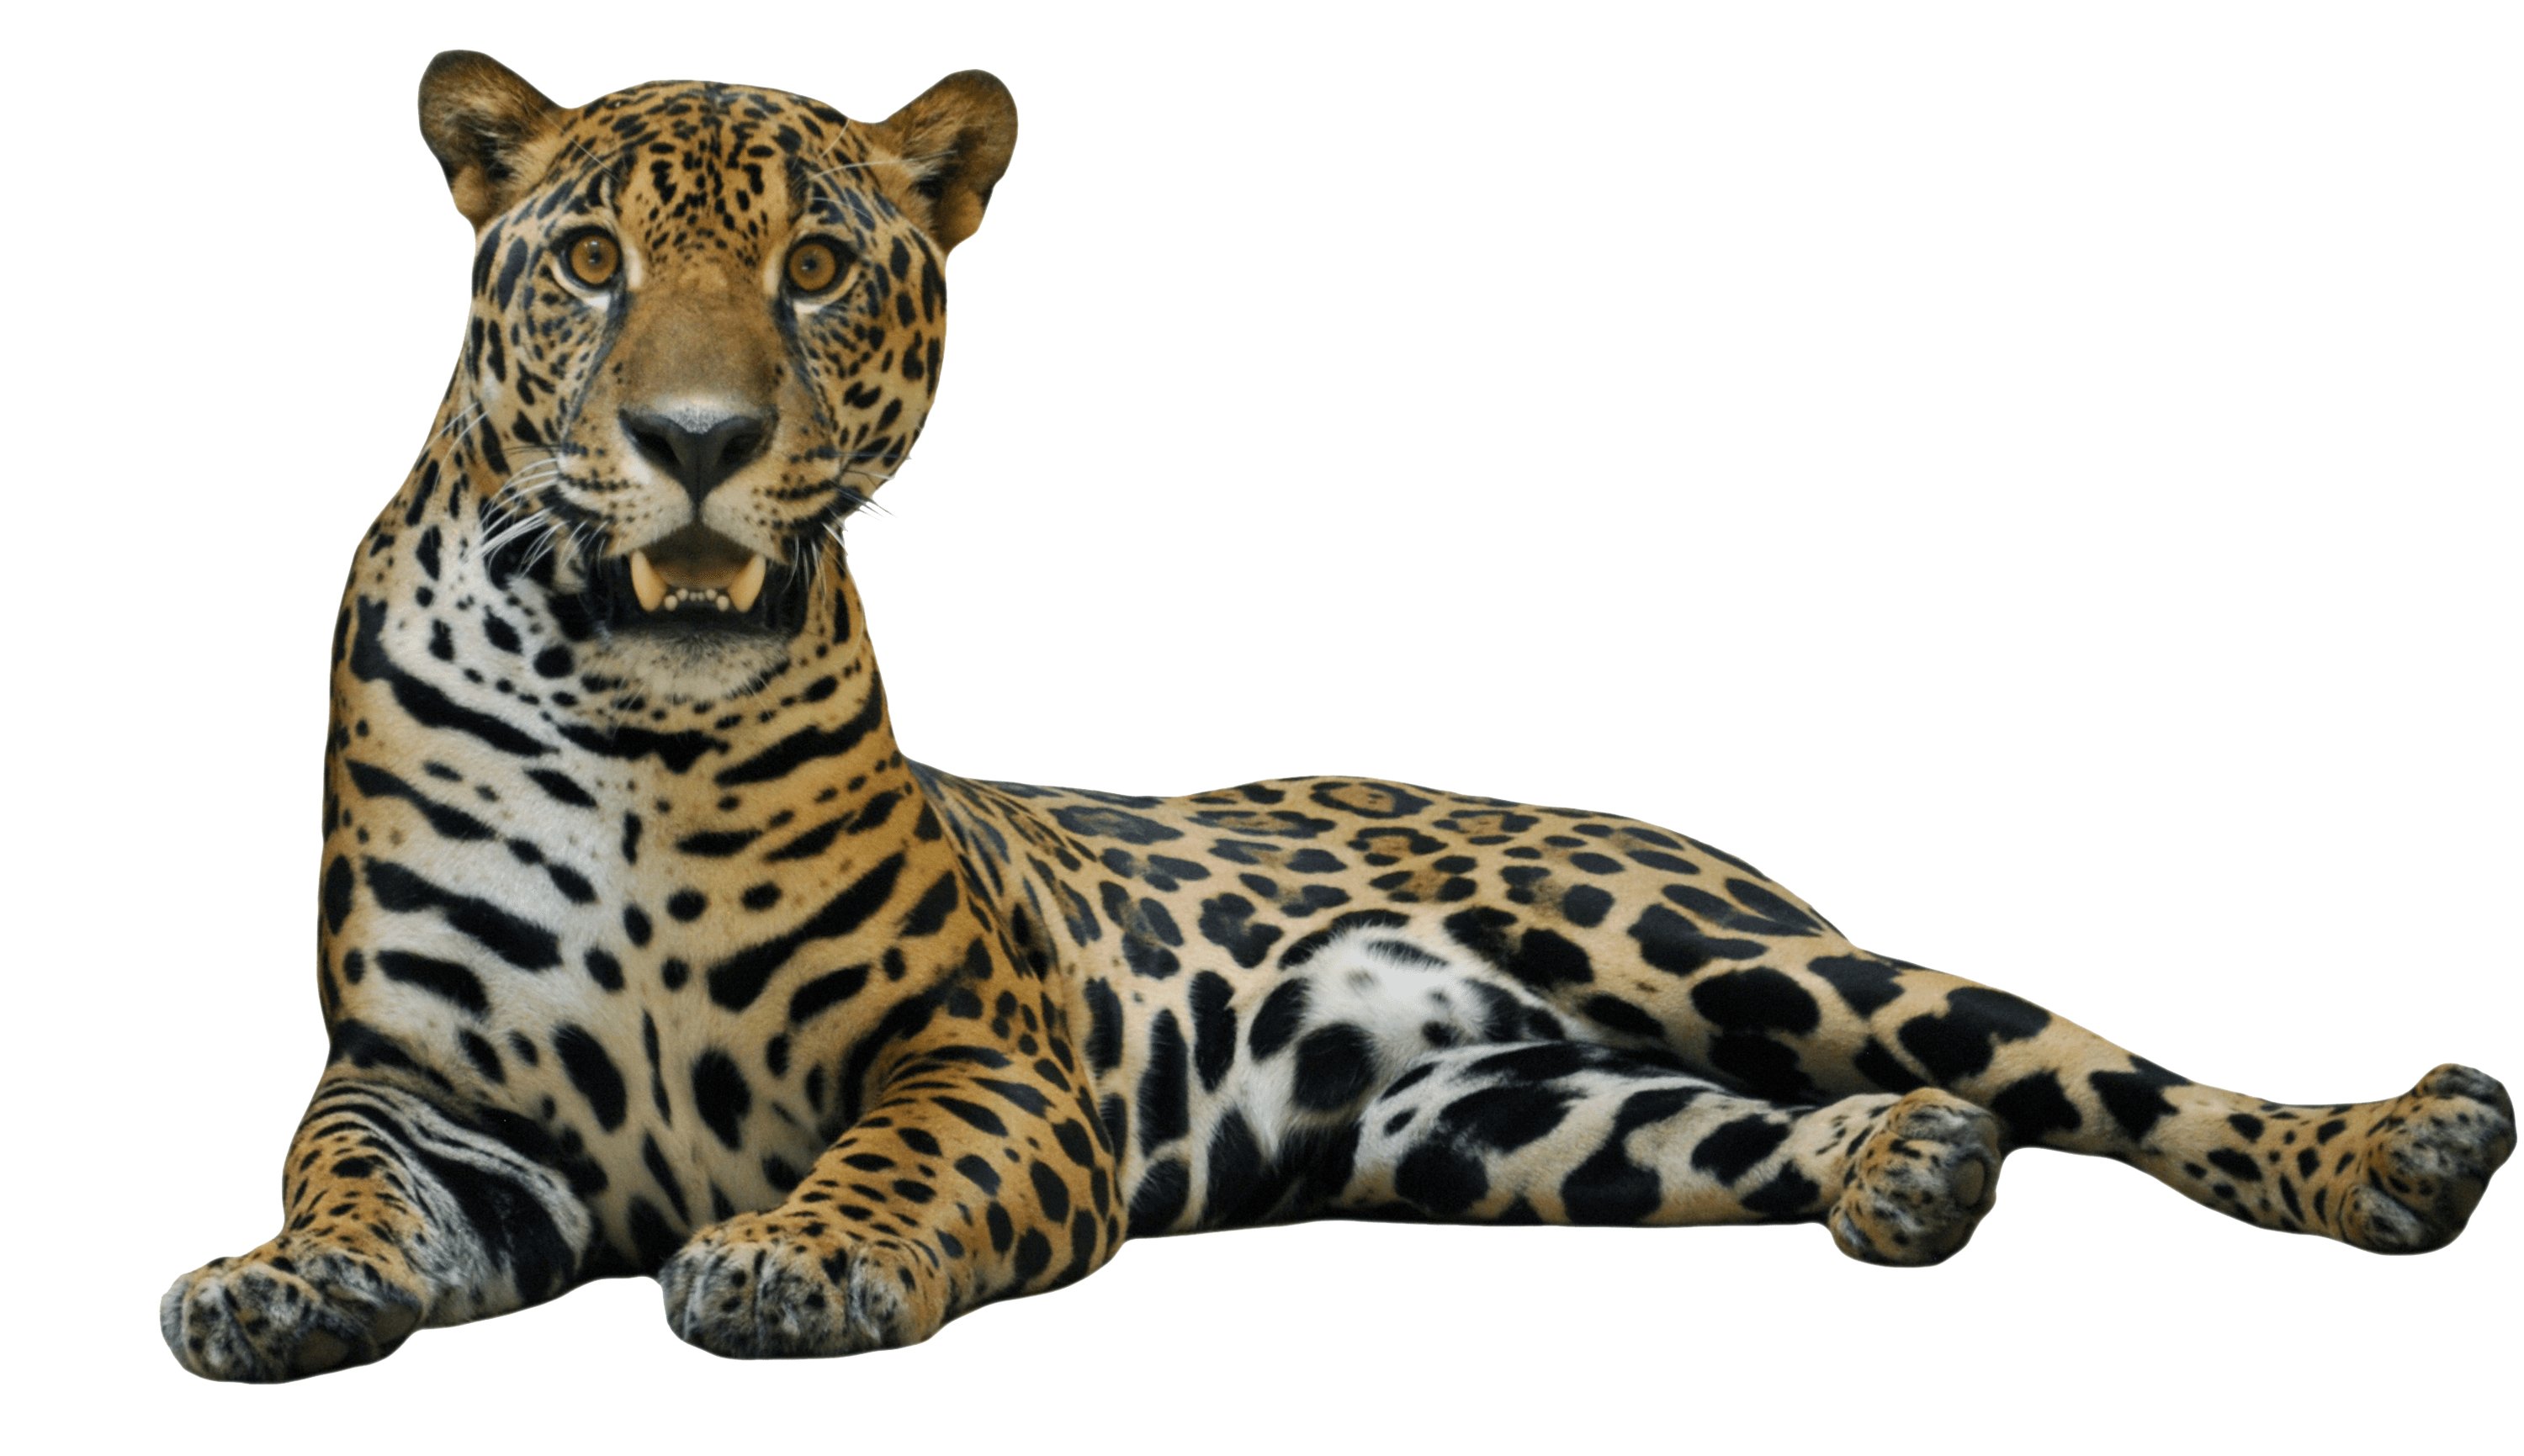 Download · animals · jaguars - Jaguar PNG